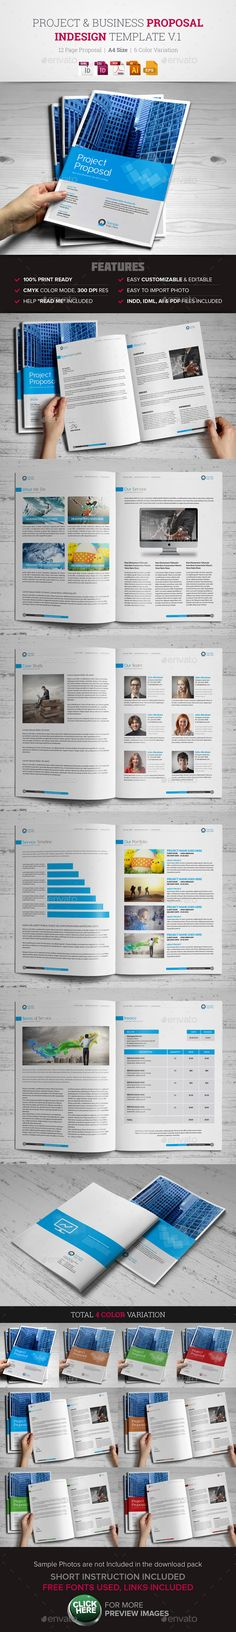 Minimal Business Proposal Business proposal, Marketing proposal - free business proposal template download